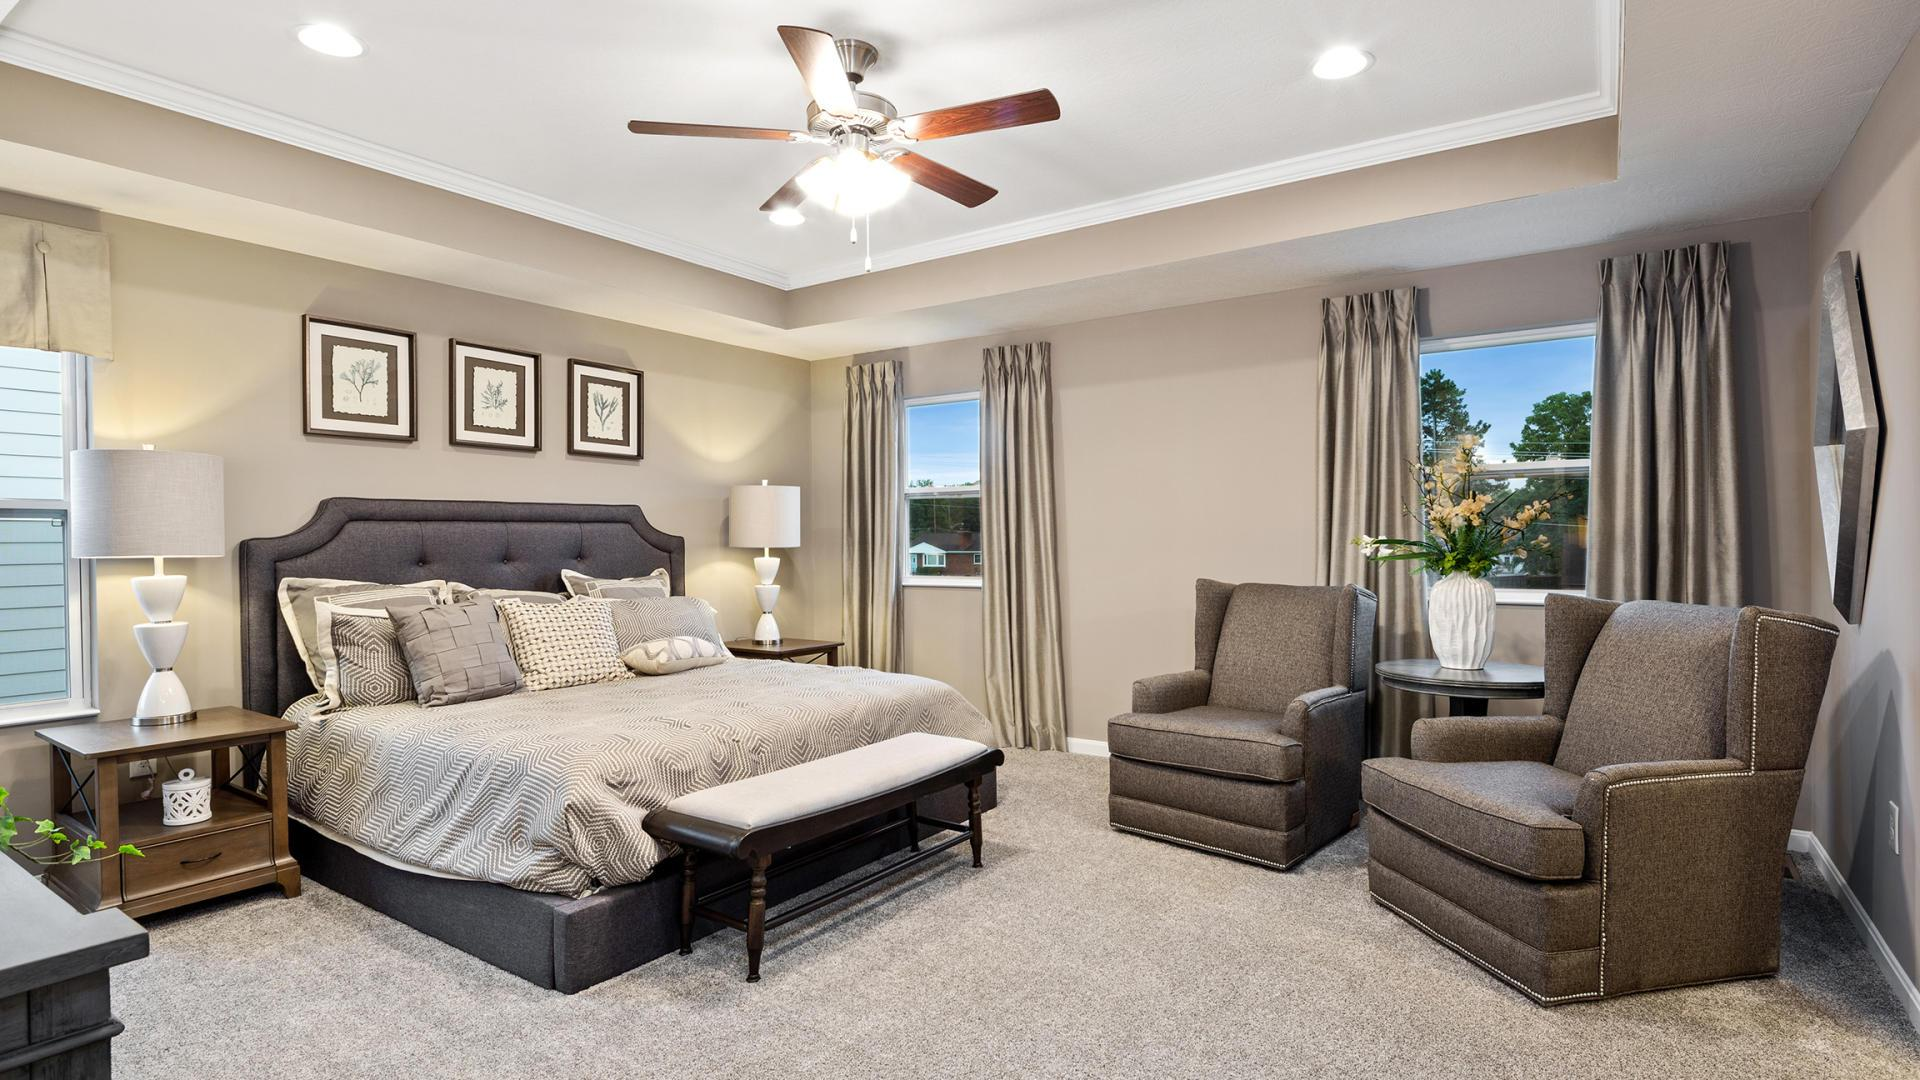 Bedroom featured in the Carlisle By Maronda Homes in Columbus, OH